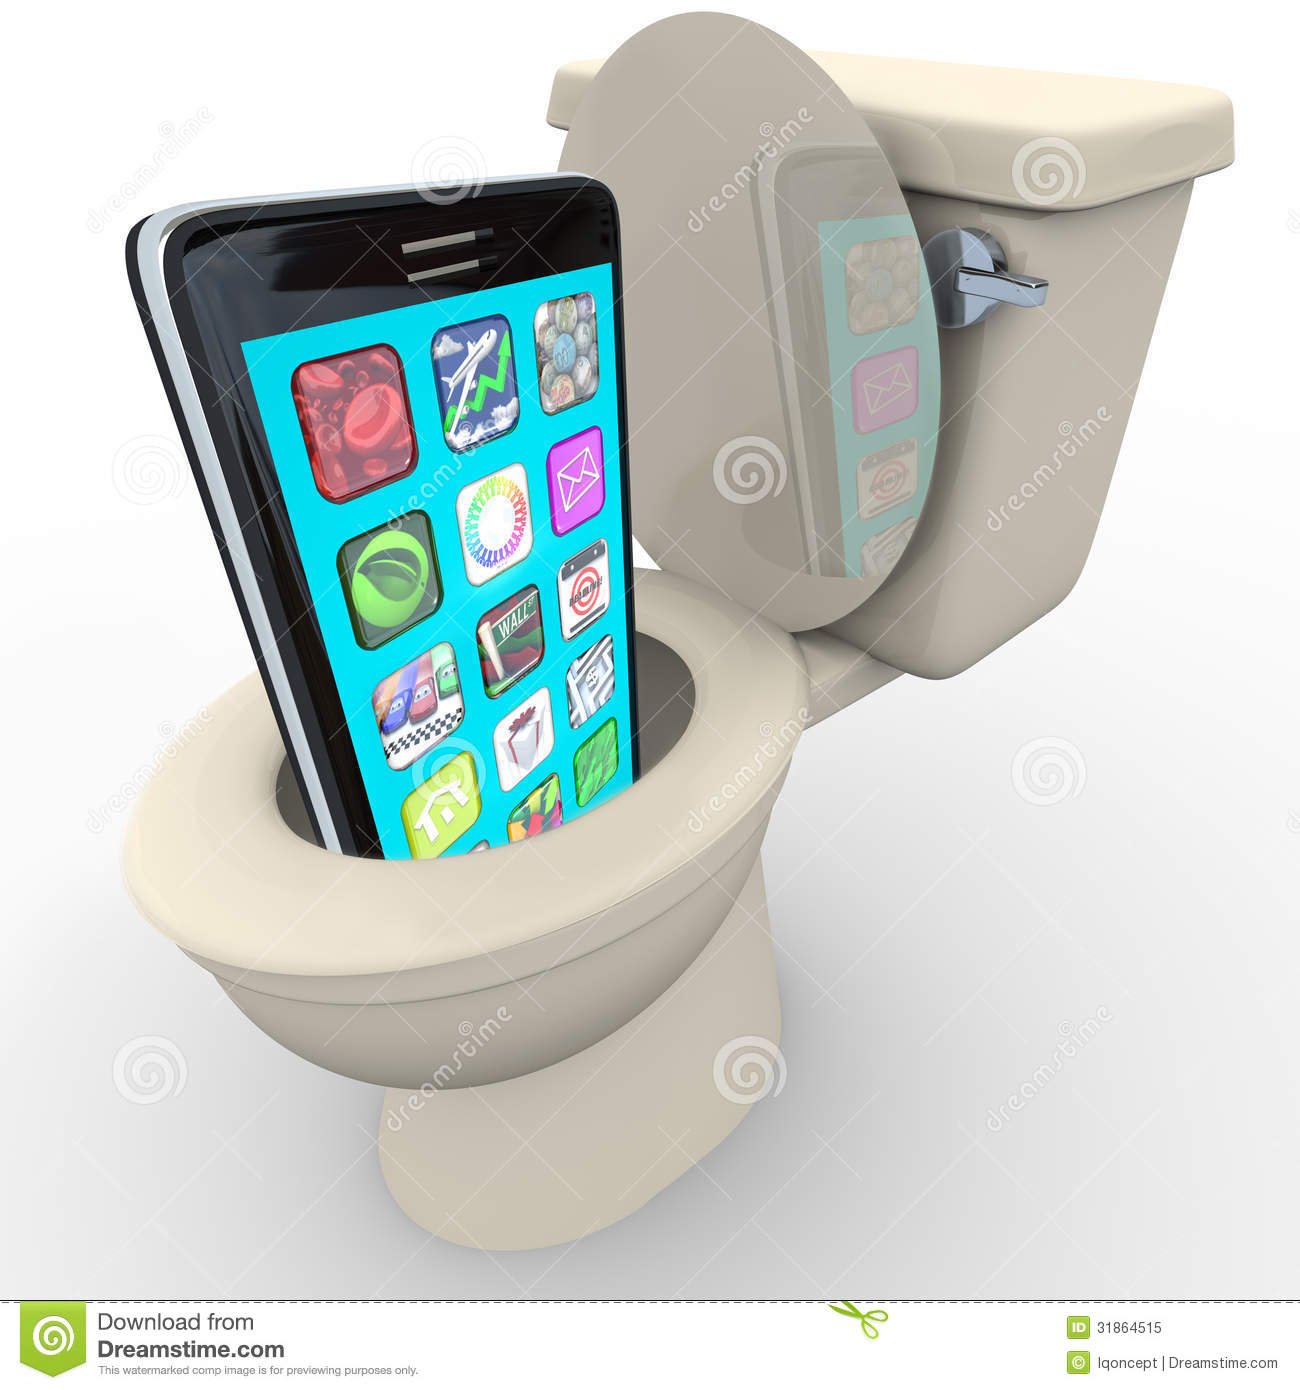 Smart phone in toilet frustrated old model obsolete royalty free stock photo image 31864515 - Toilet toilet model ...